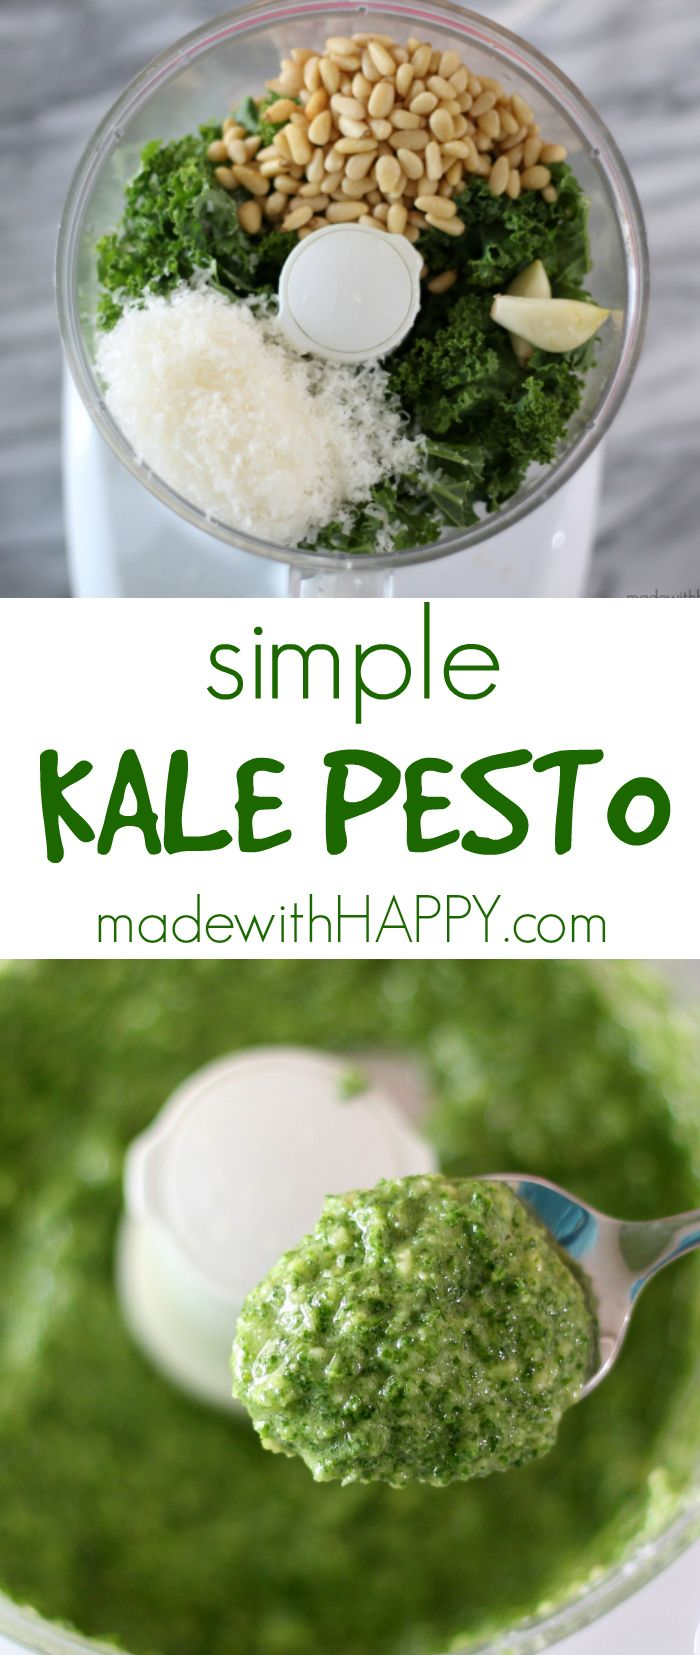 Simple Kale Pesto   Easy Meatless Monday Meal   Easy Kale Pesto   www.madewithHAPPY.com